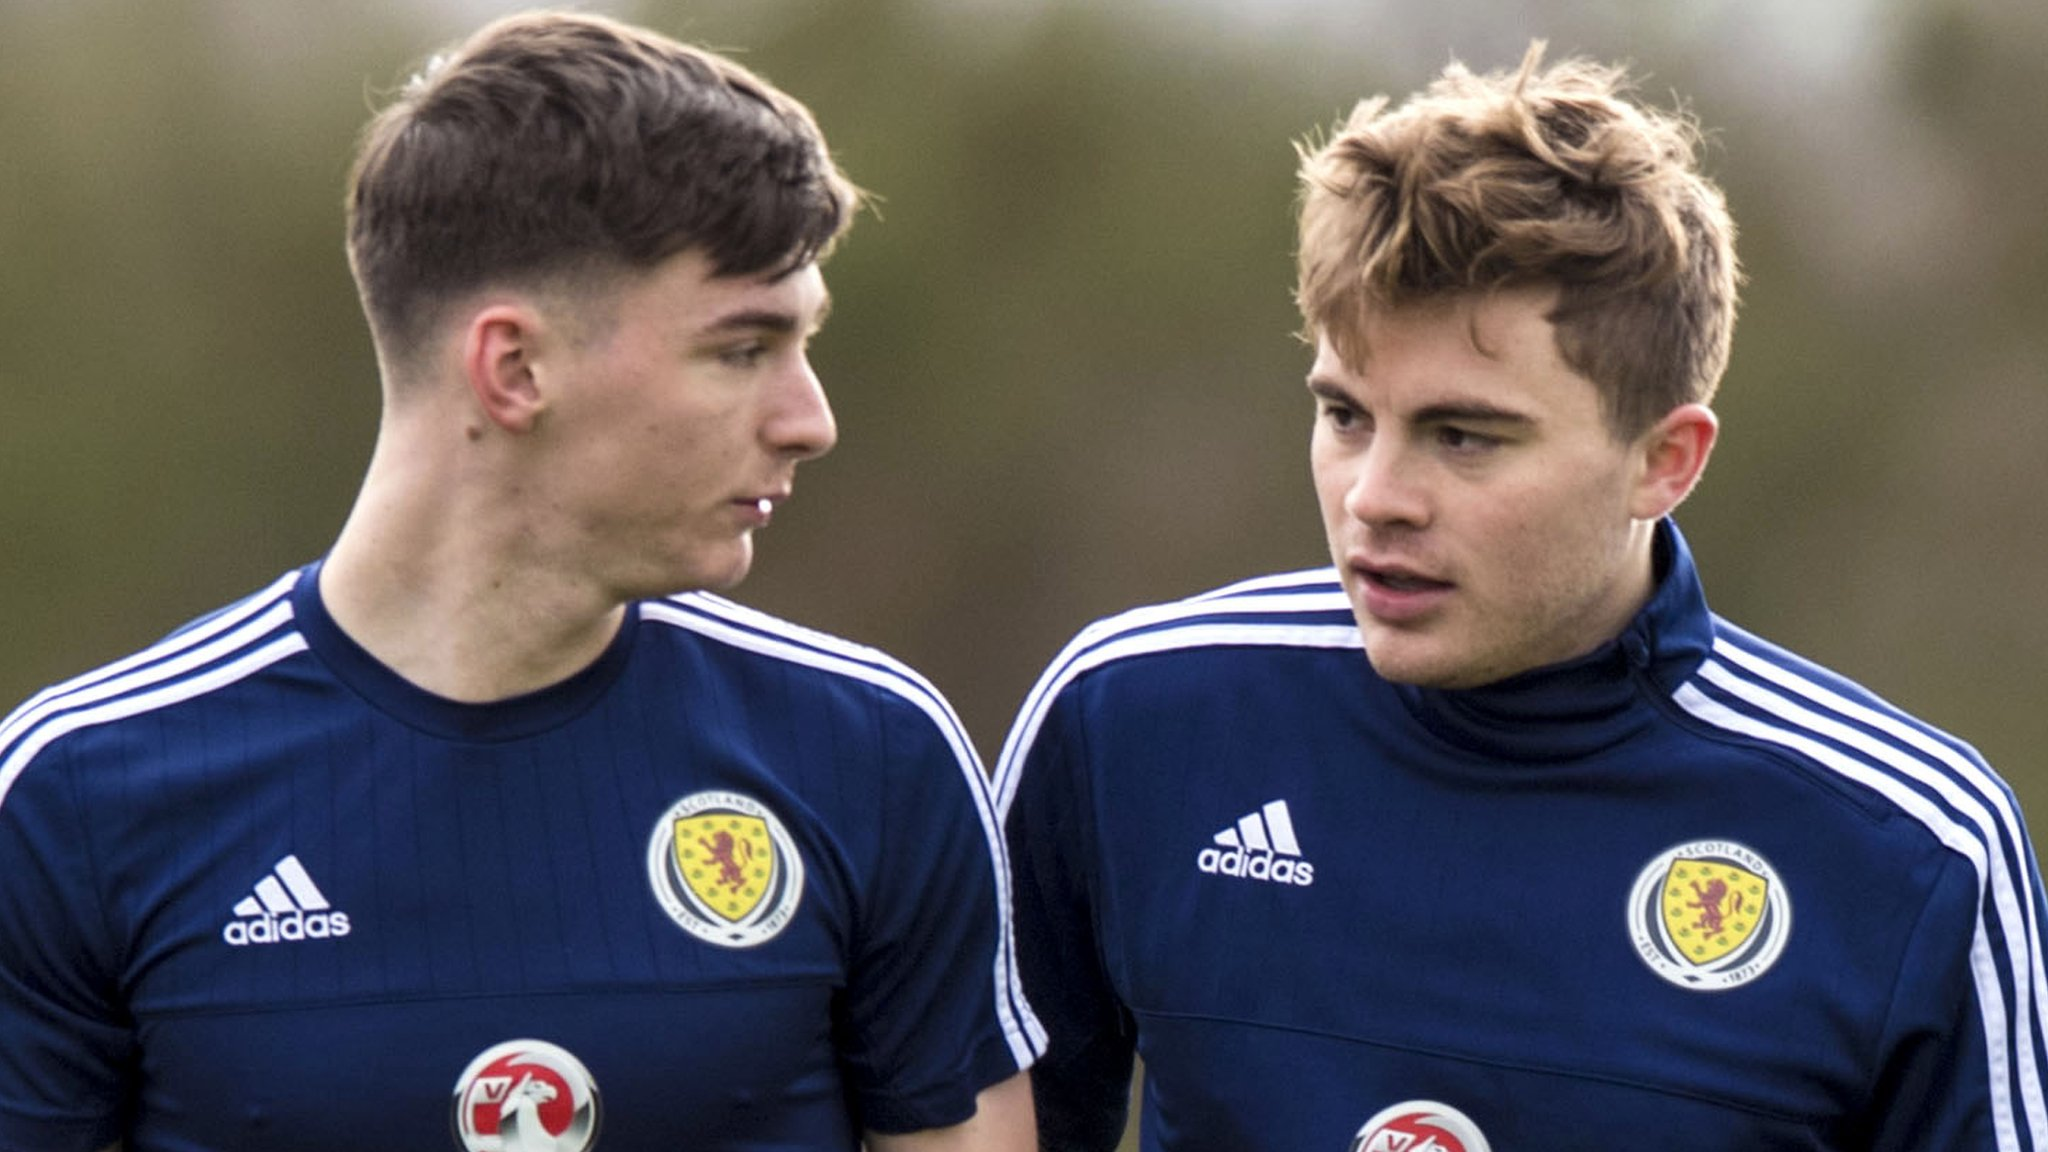 Forrest in, Tierney out - your Scotland XI to face Israel